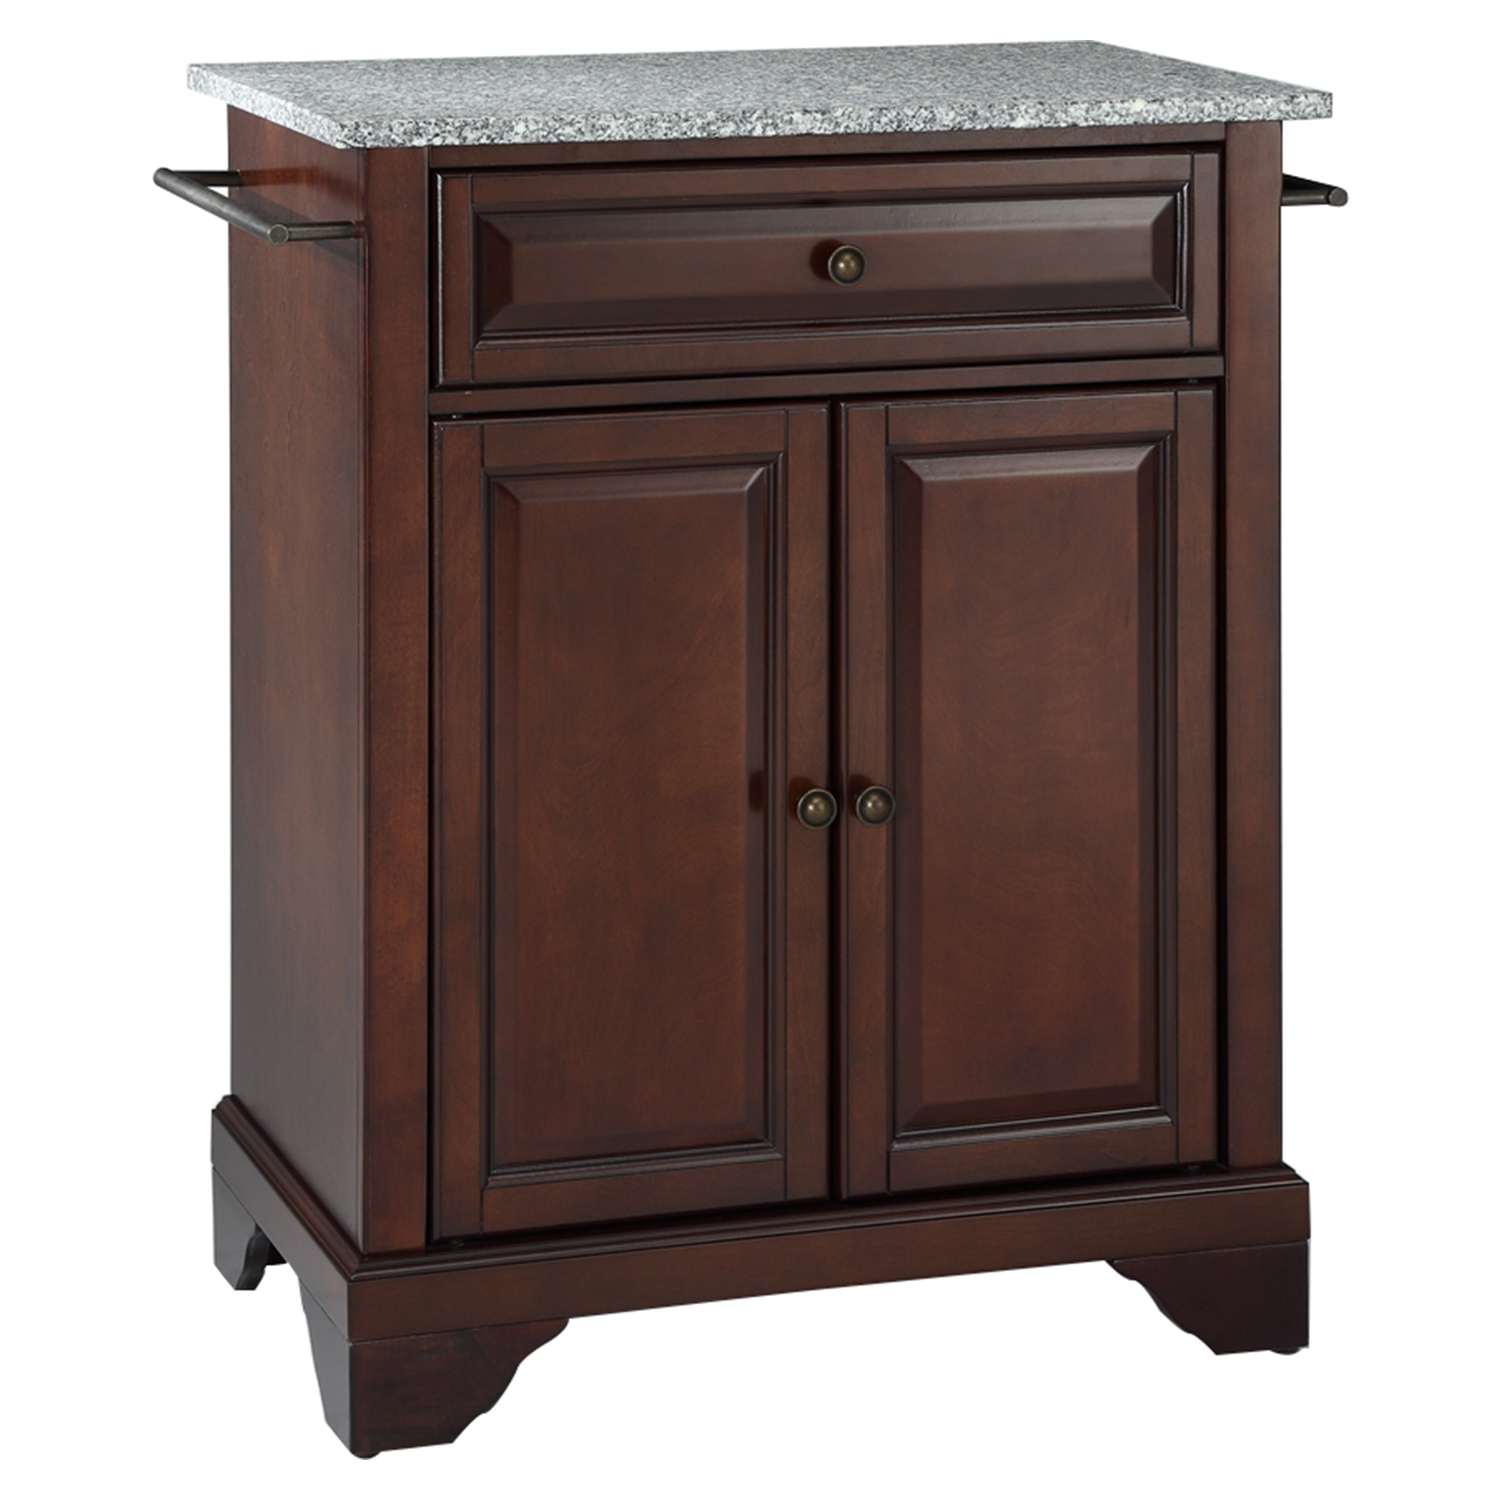 LaFayette Kitchen Island - Granite Top, Portable, Vintage Mahogany - CROS-KF30023BMA